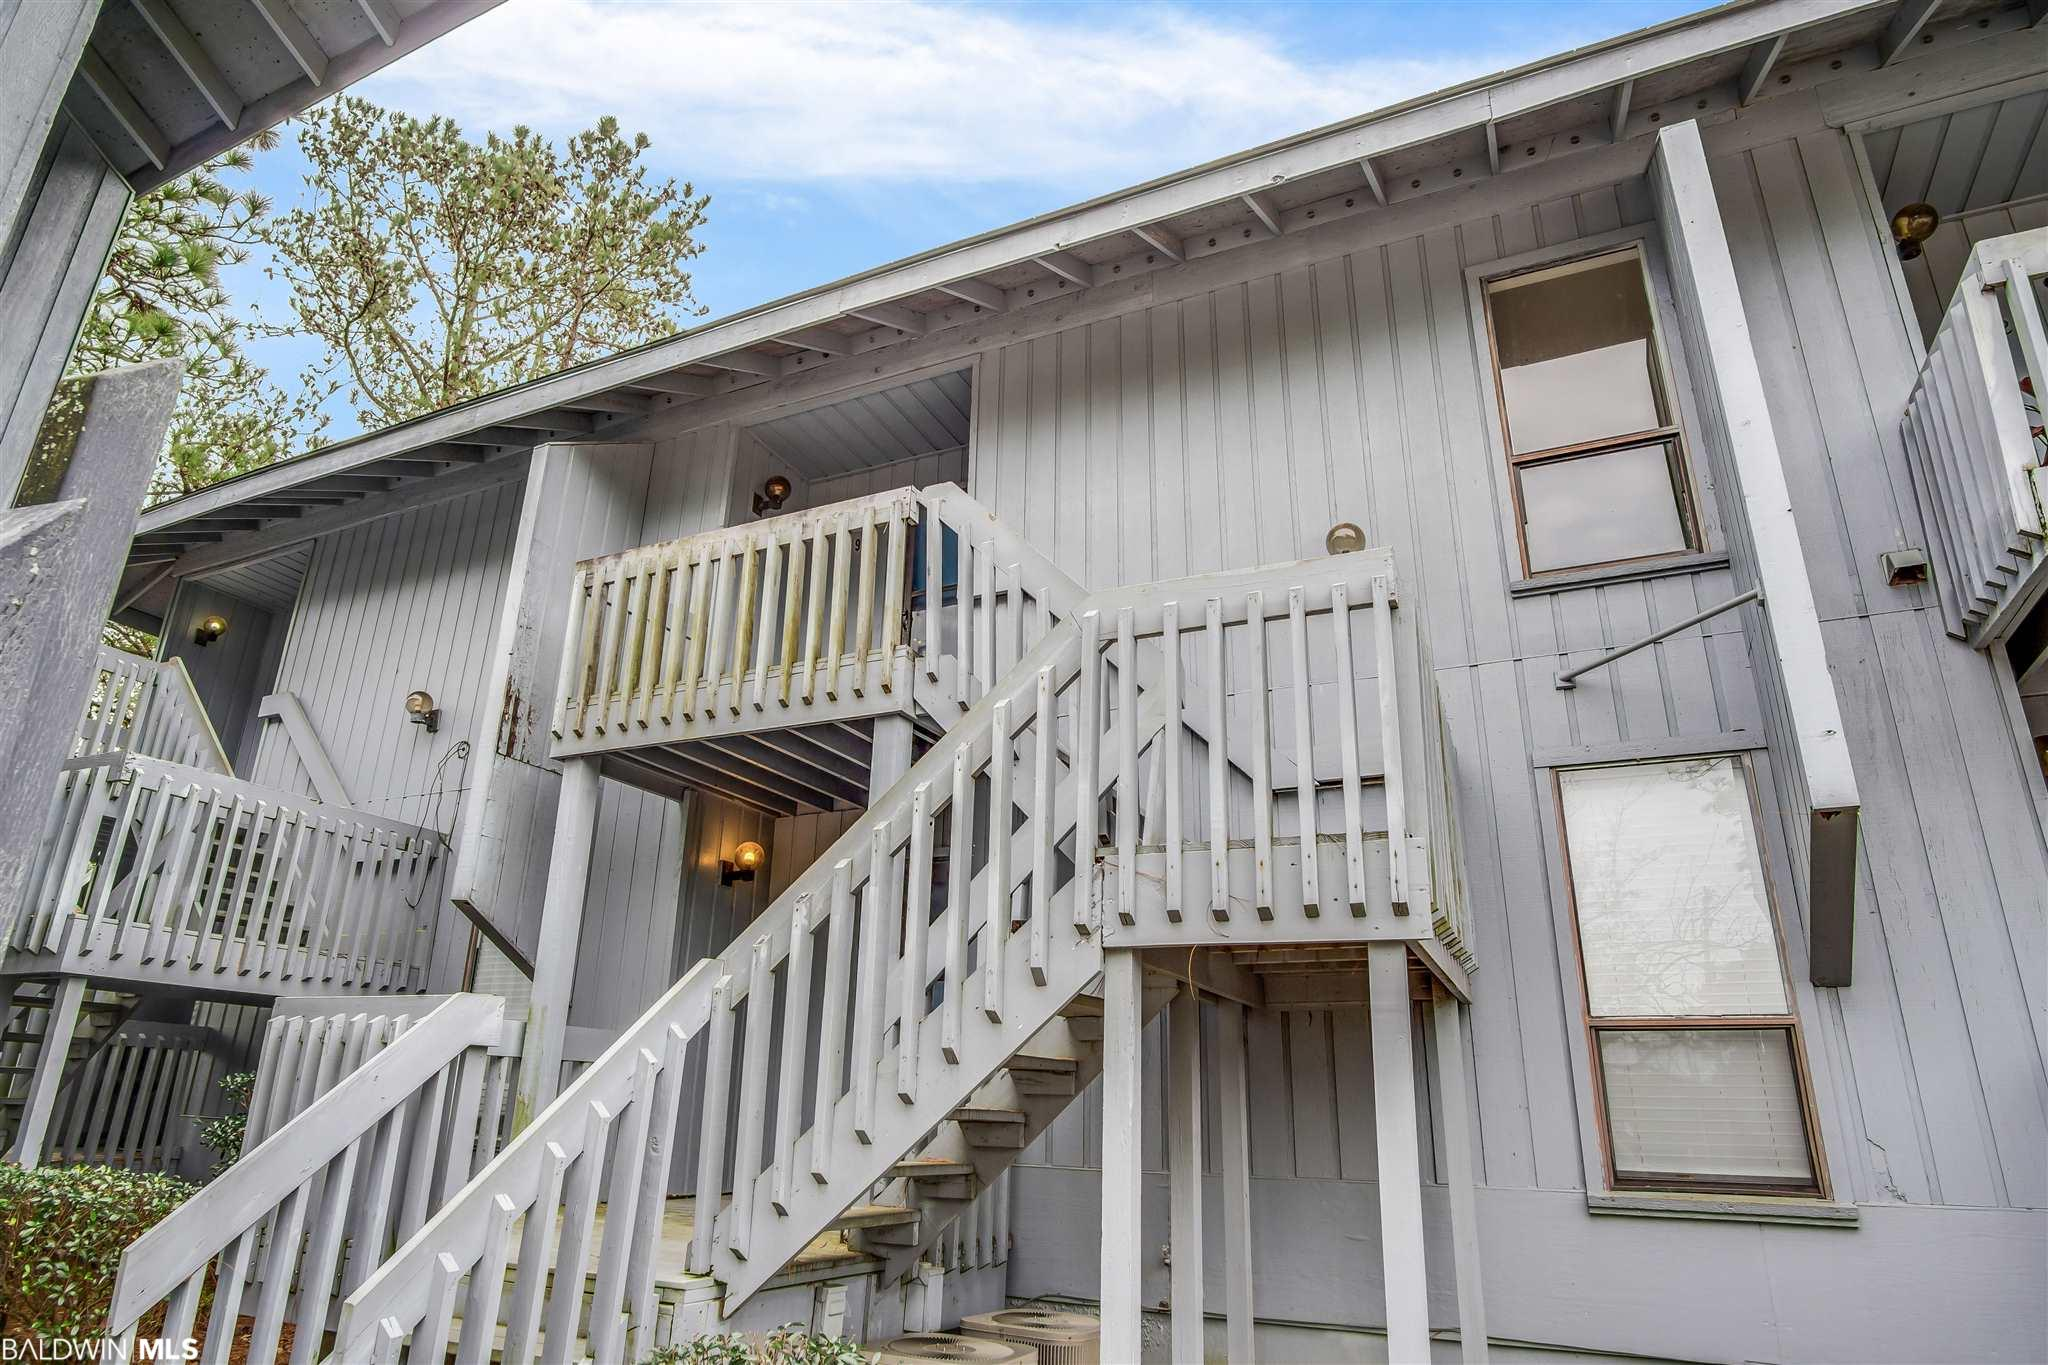 This cute one bed / one bath condo is located in Golf Terrace. Enjoy your morning coffee sitting on the balcony with a view of the fairway and wooded area beyond that. Granite counter tops in the kitchen and stackable washer/dryer in the bathroom. Schedule a showing with your favorite realtor today!